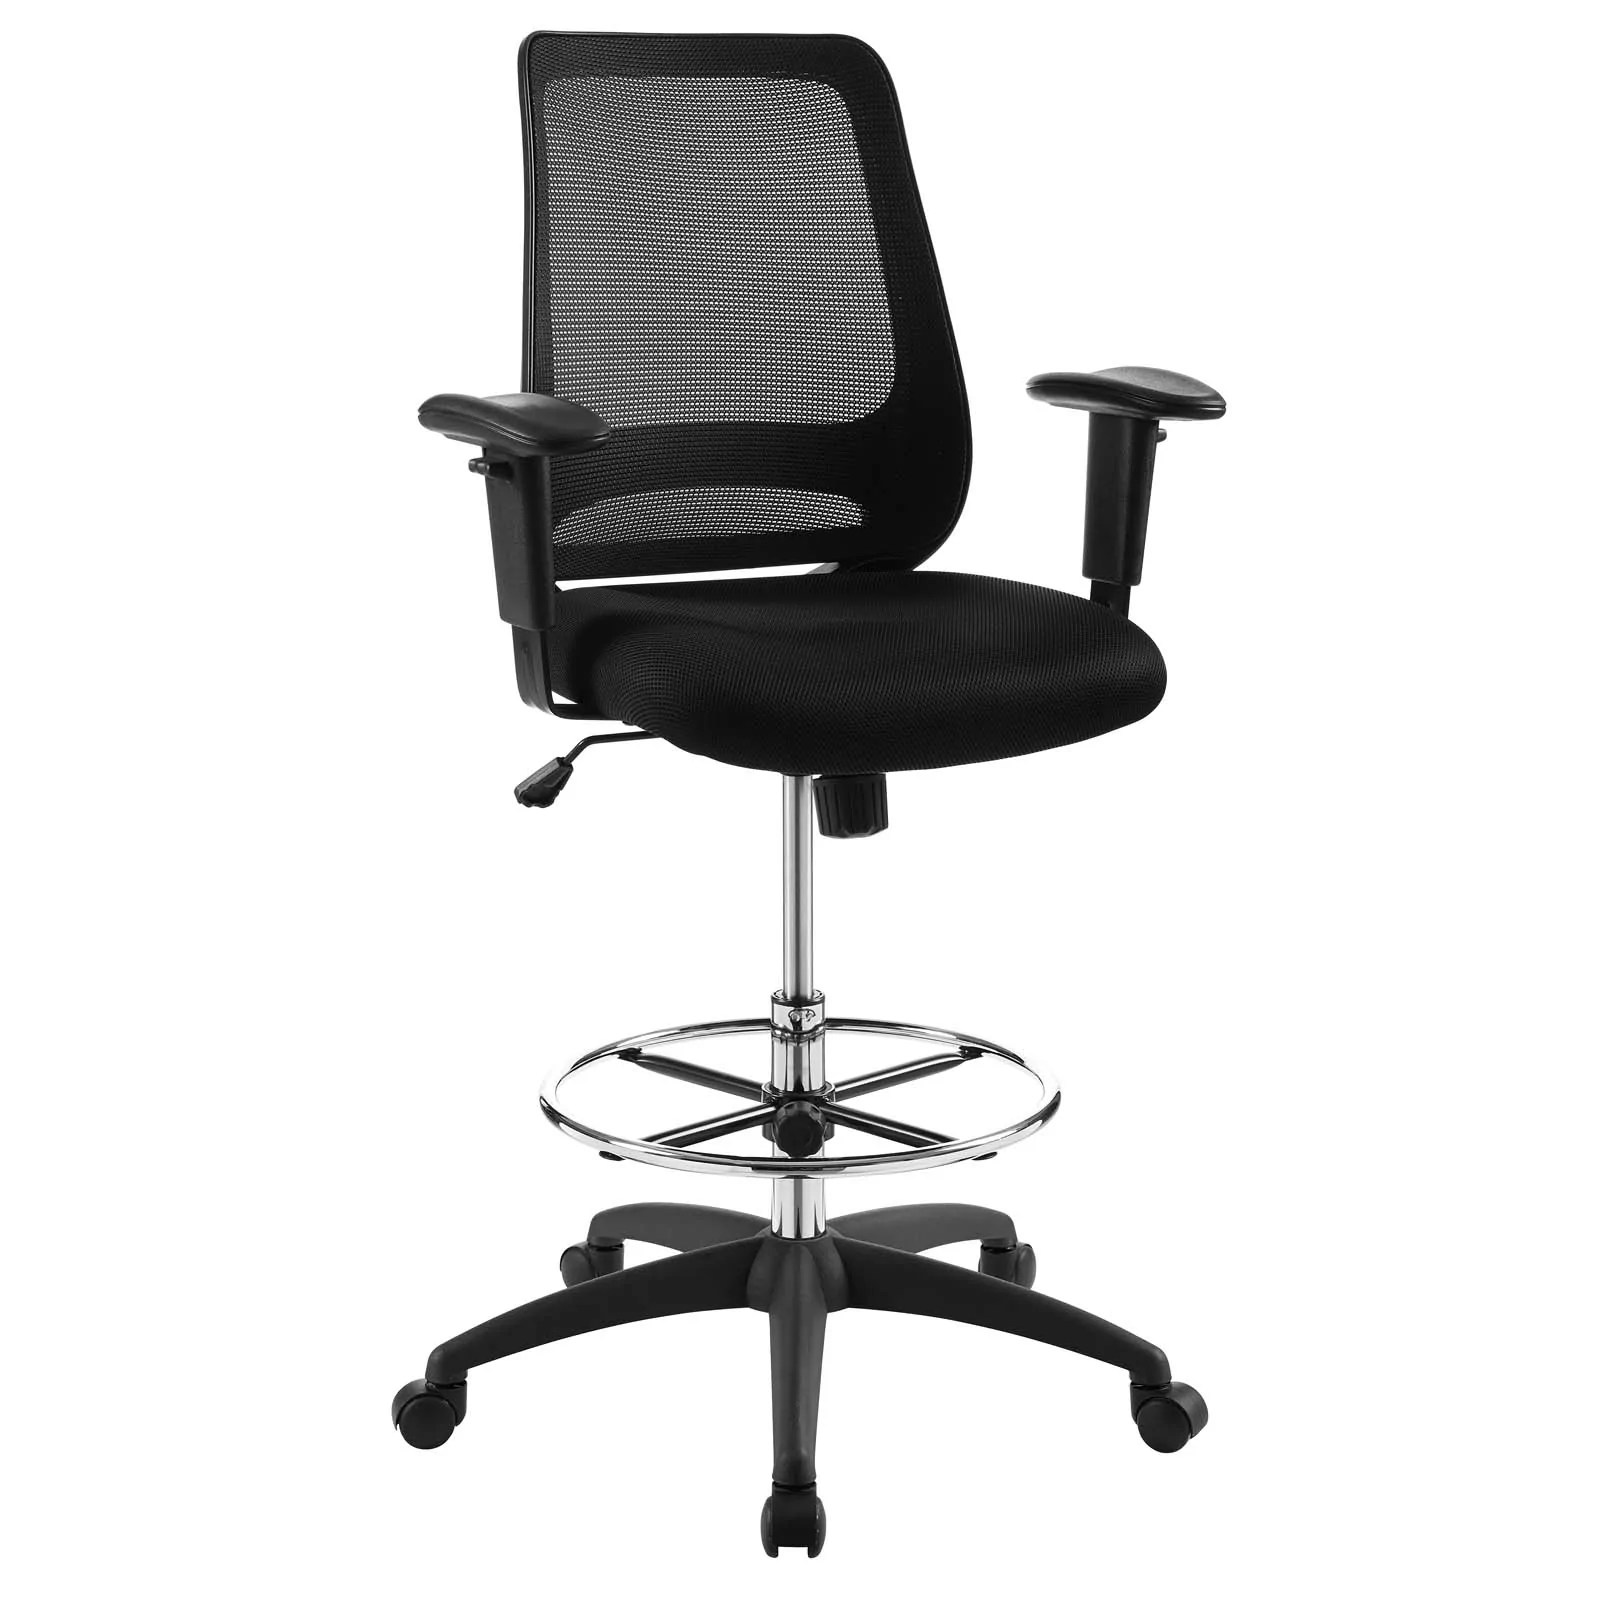 mesh drafting chair folding kathmandu modway office chairs on sale eei 3196 blk forge black